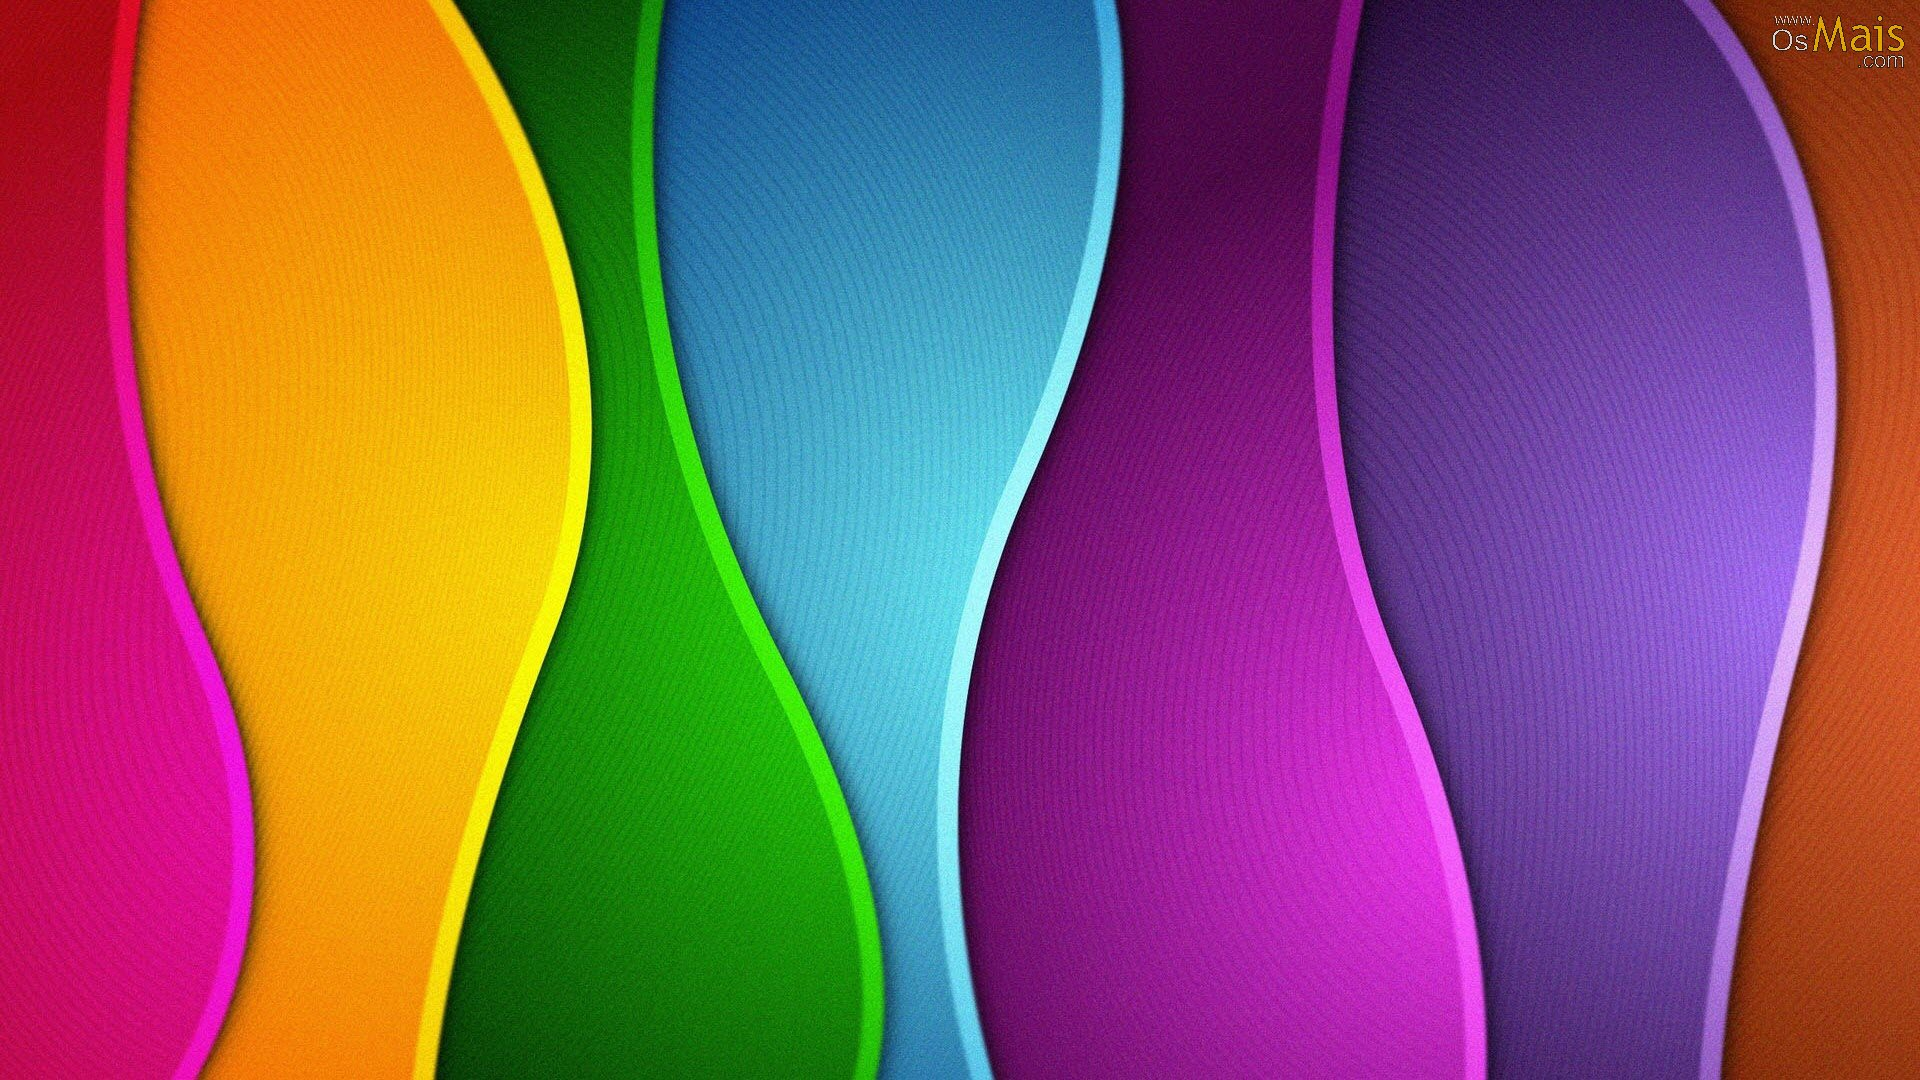 wallpapers colorido plano de -#main